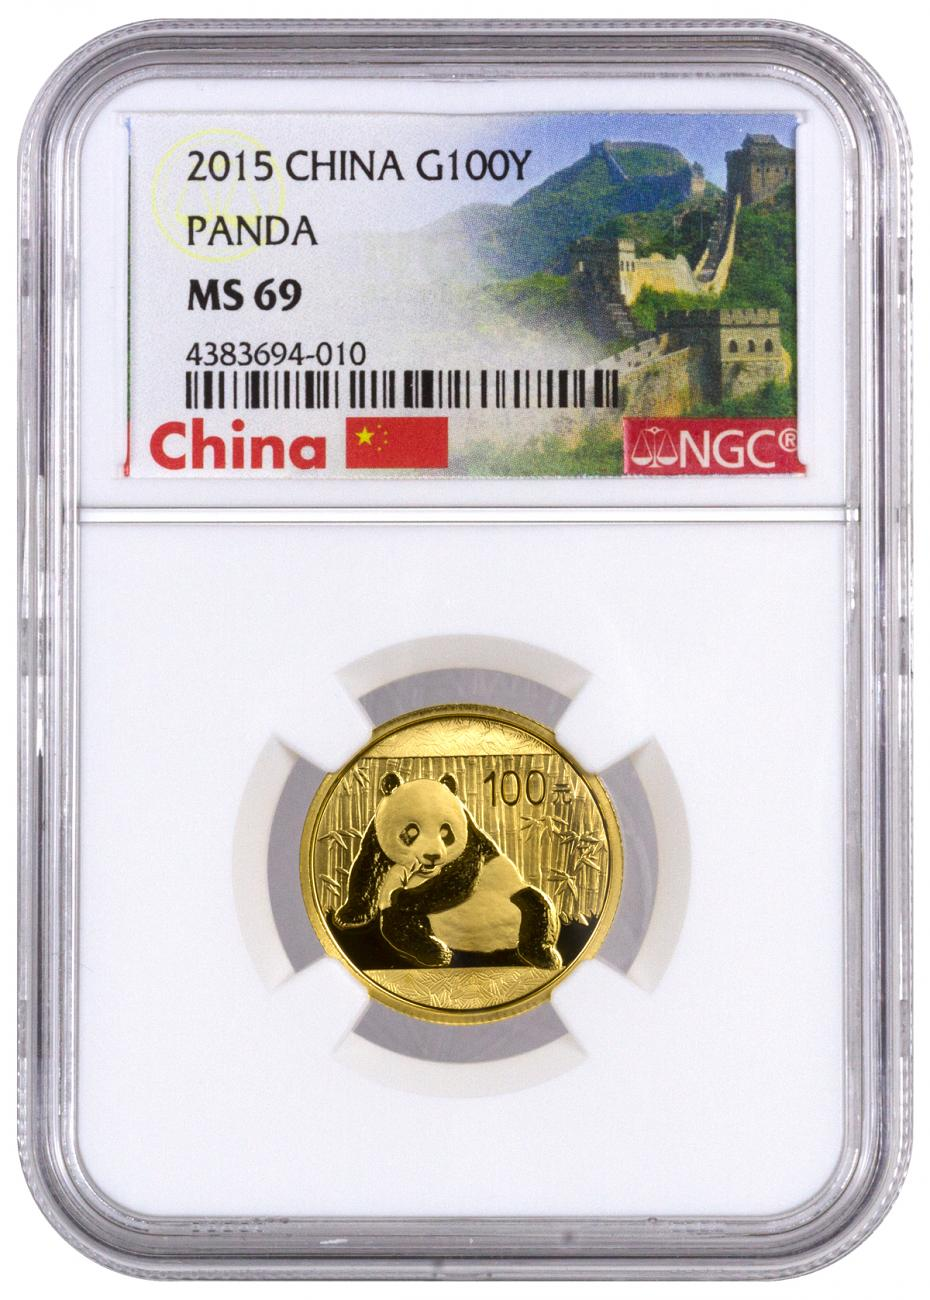 2015 China 1/4 oz Gold Panda ¥100 Coin NGC MS69 (Exclusive Great Wall Label)